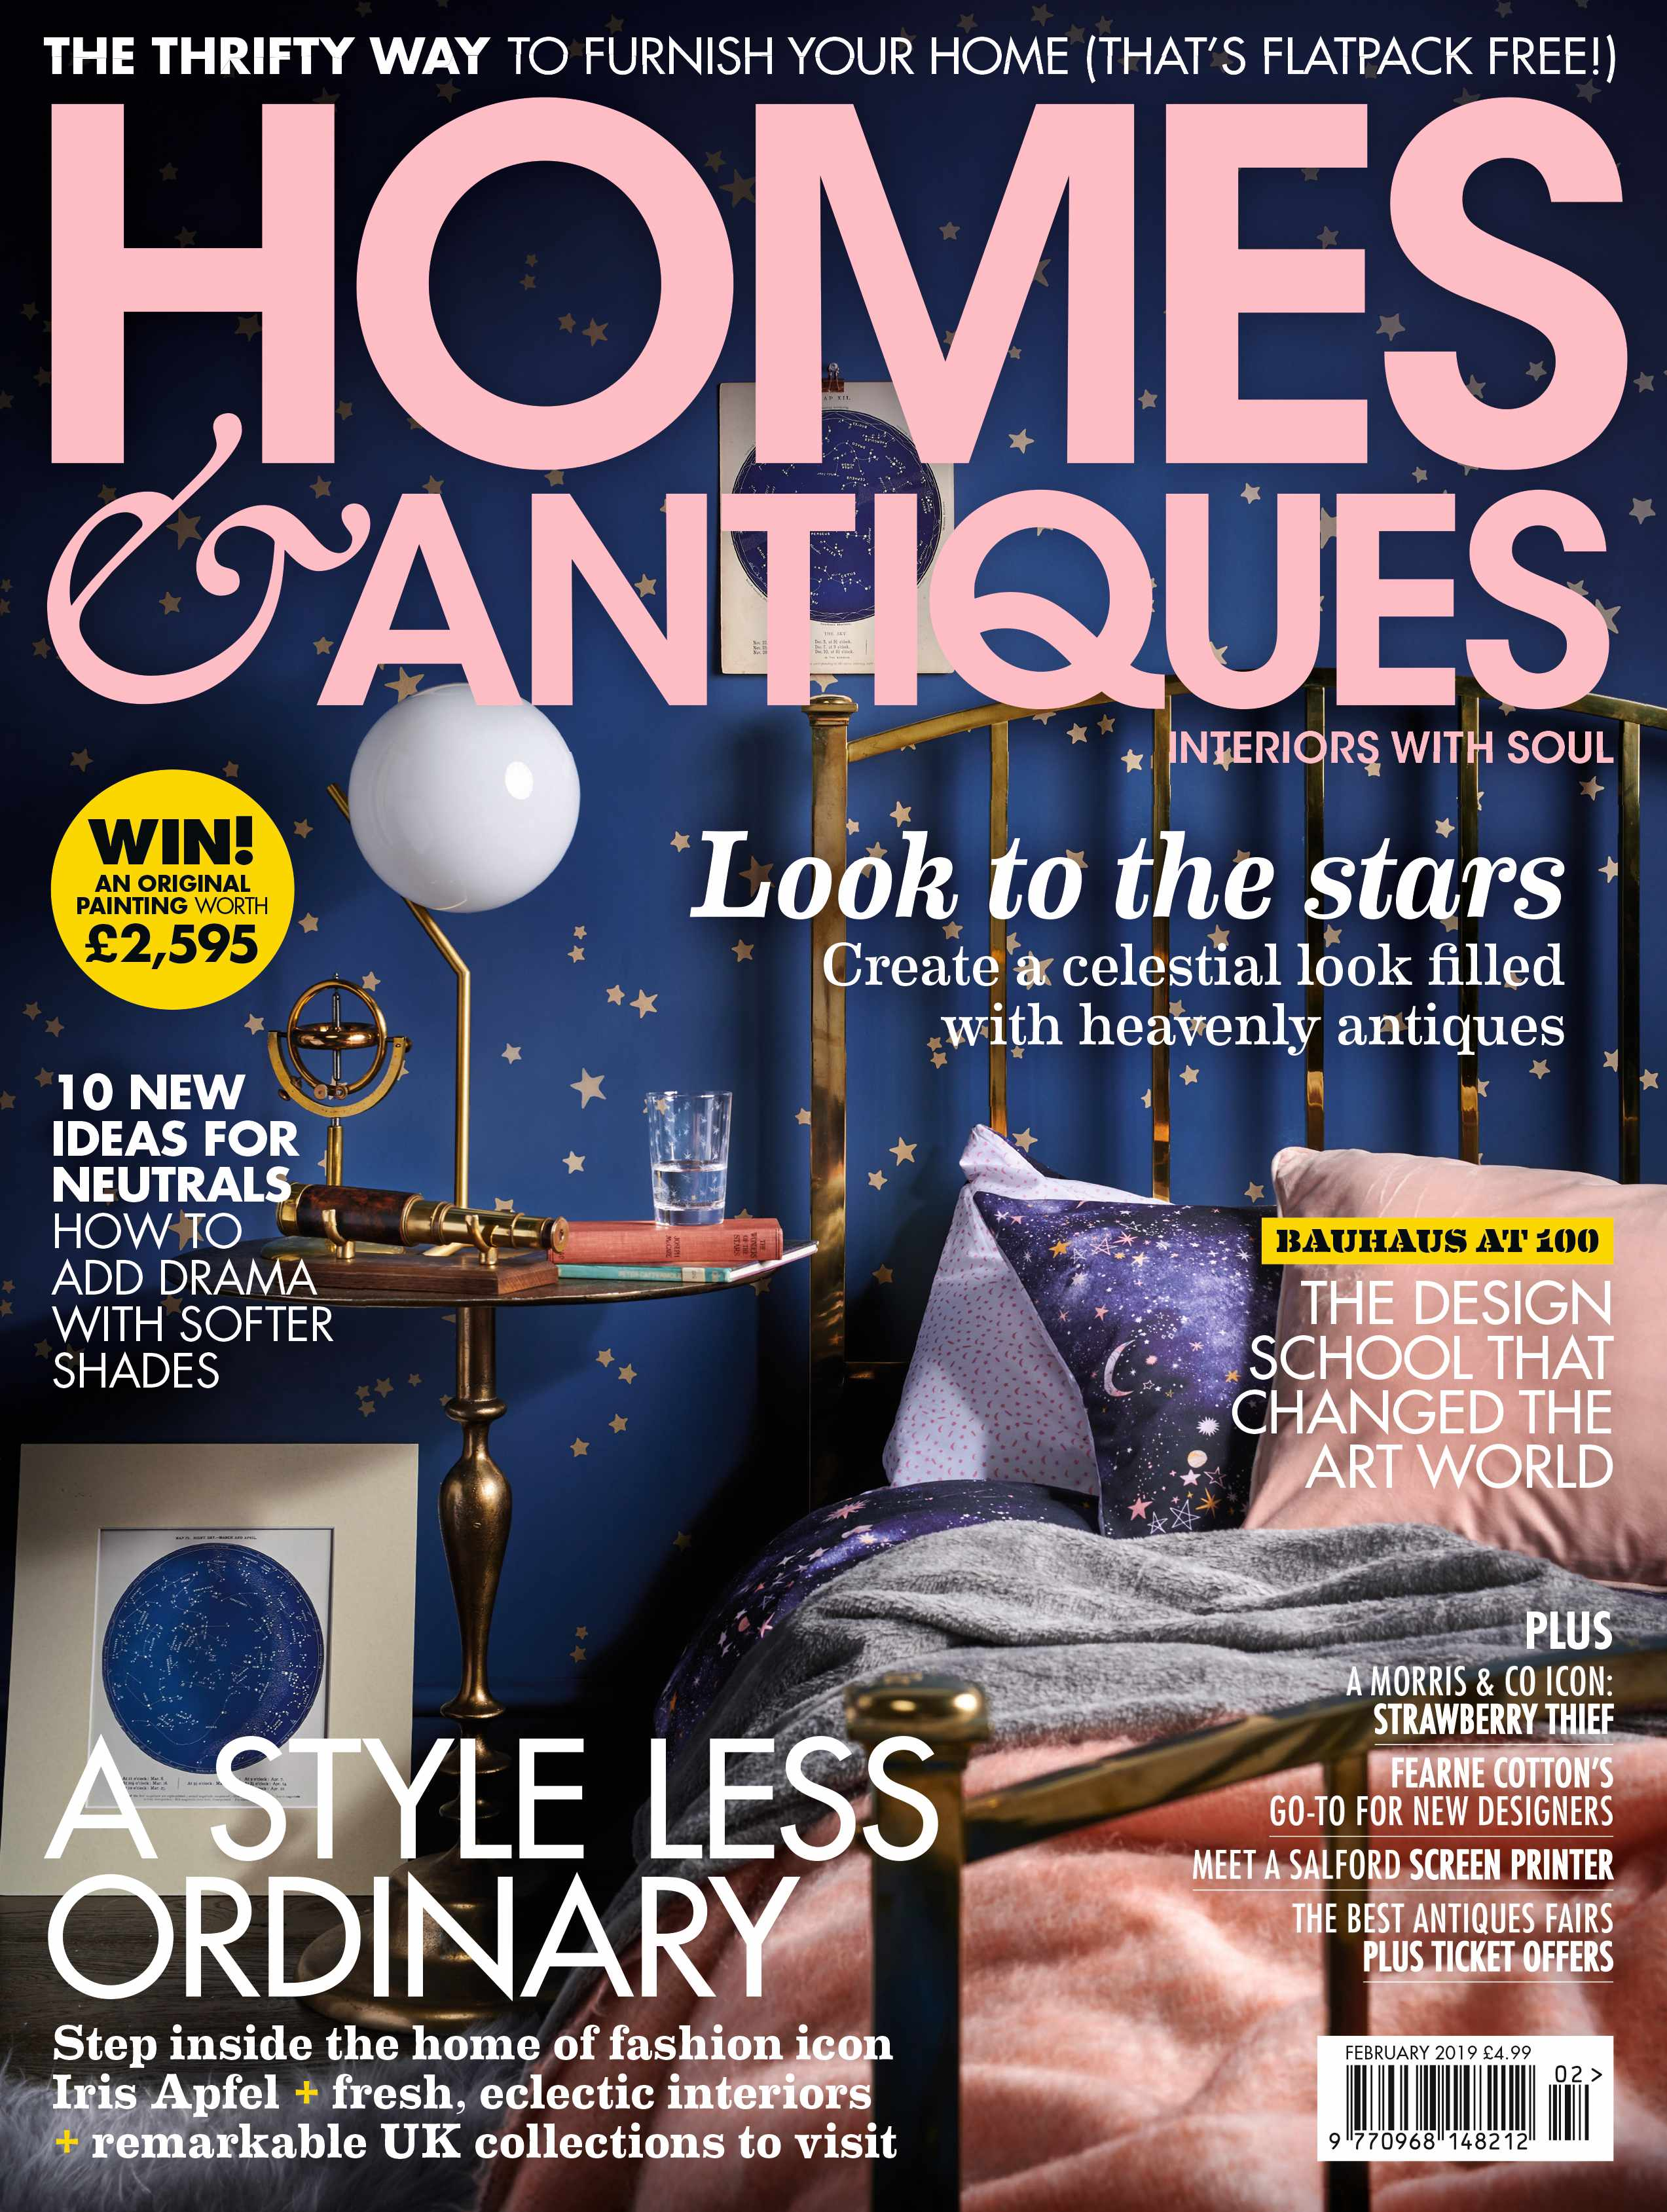 Homes & Antiques magazine February 2019 cover featuring a bedroom filled with celestial antiques and star inspired accessories